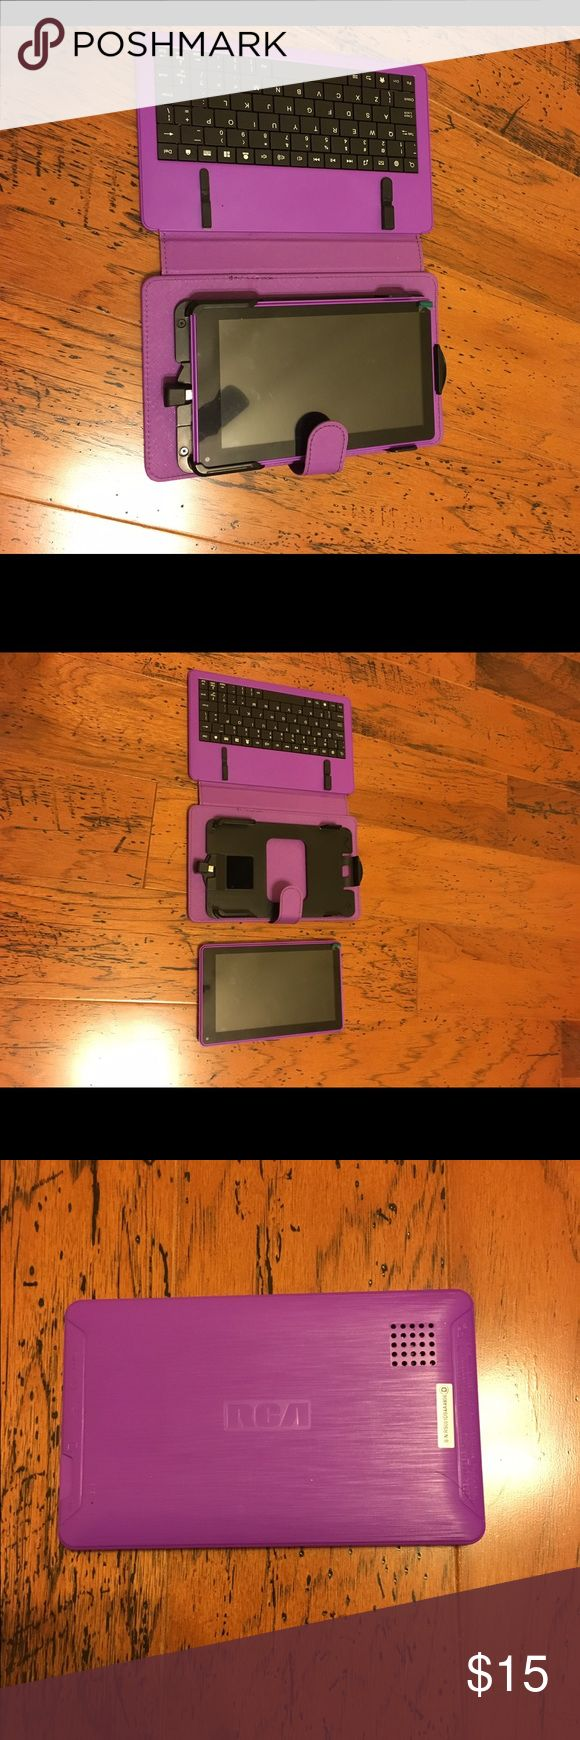 RCA tablet. Used but in great condition. Don't have a charger for it. Purple. Comes with keyboard. Charger can be bought cheap at Walmart or any other store I think. RCA Other